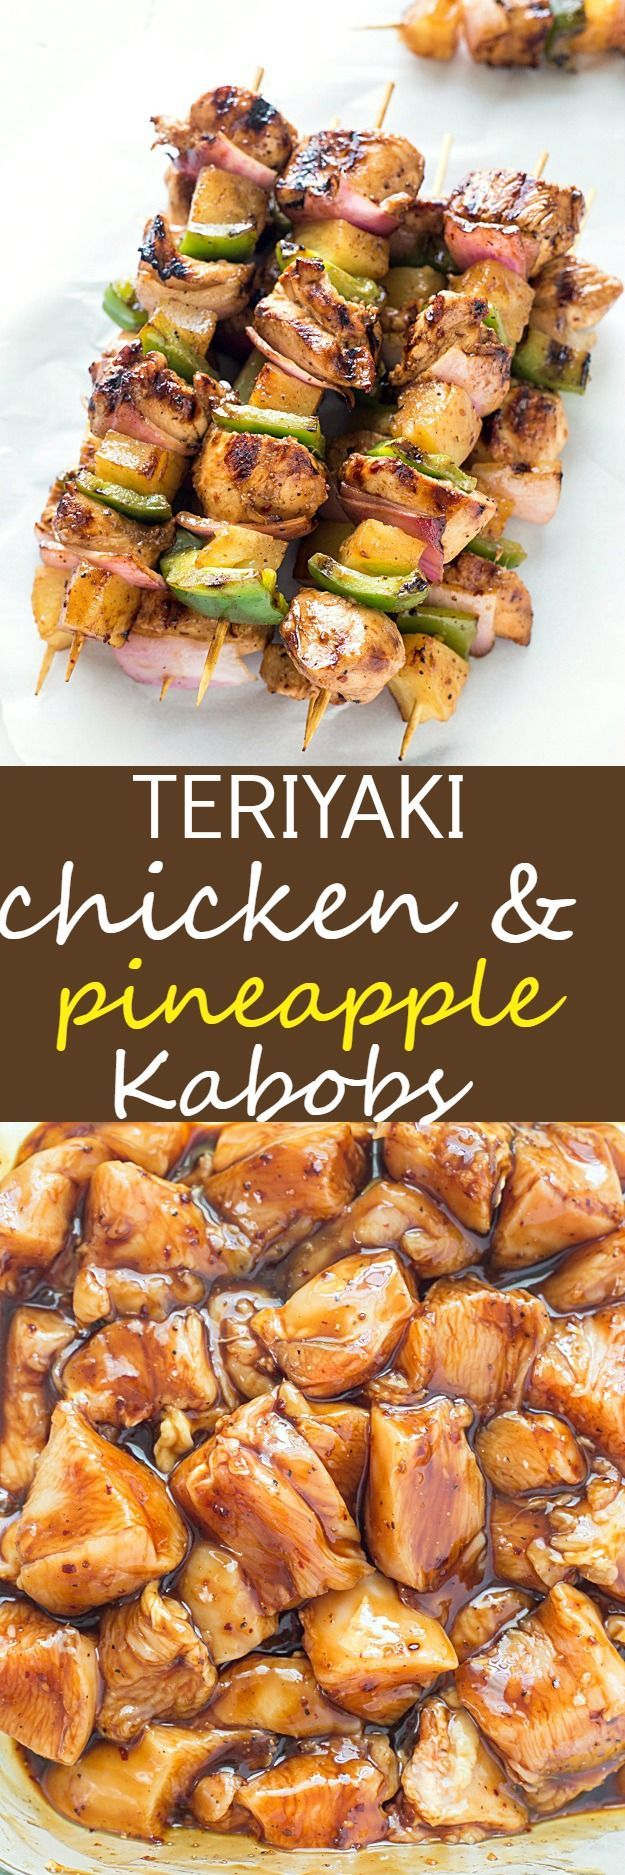 How long do i grill chicken kabobs - Easy Teriyaki Chicken Pineapple Kabobs